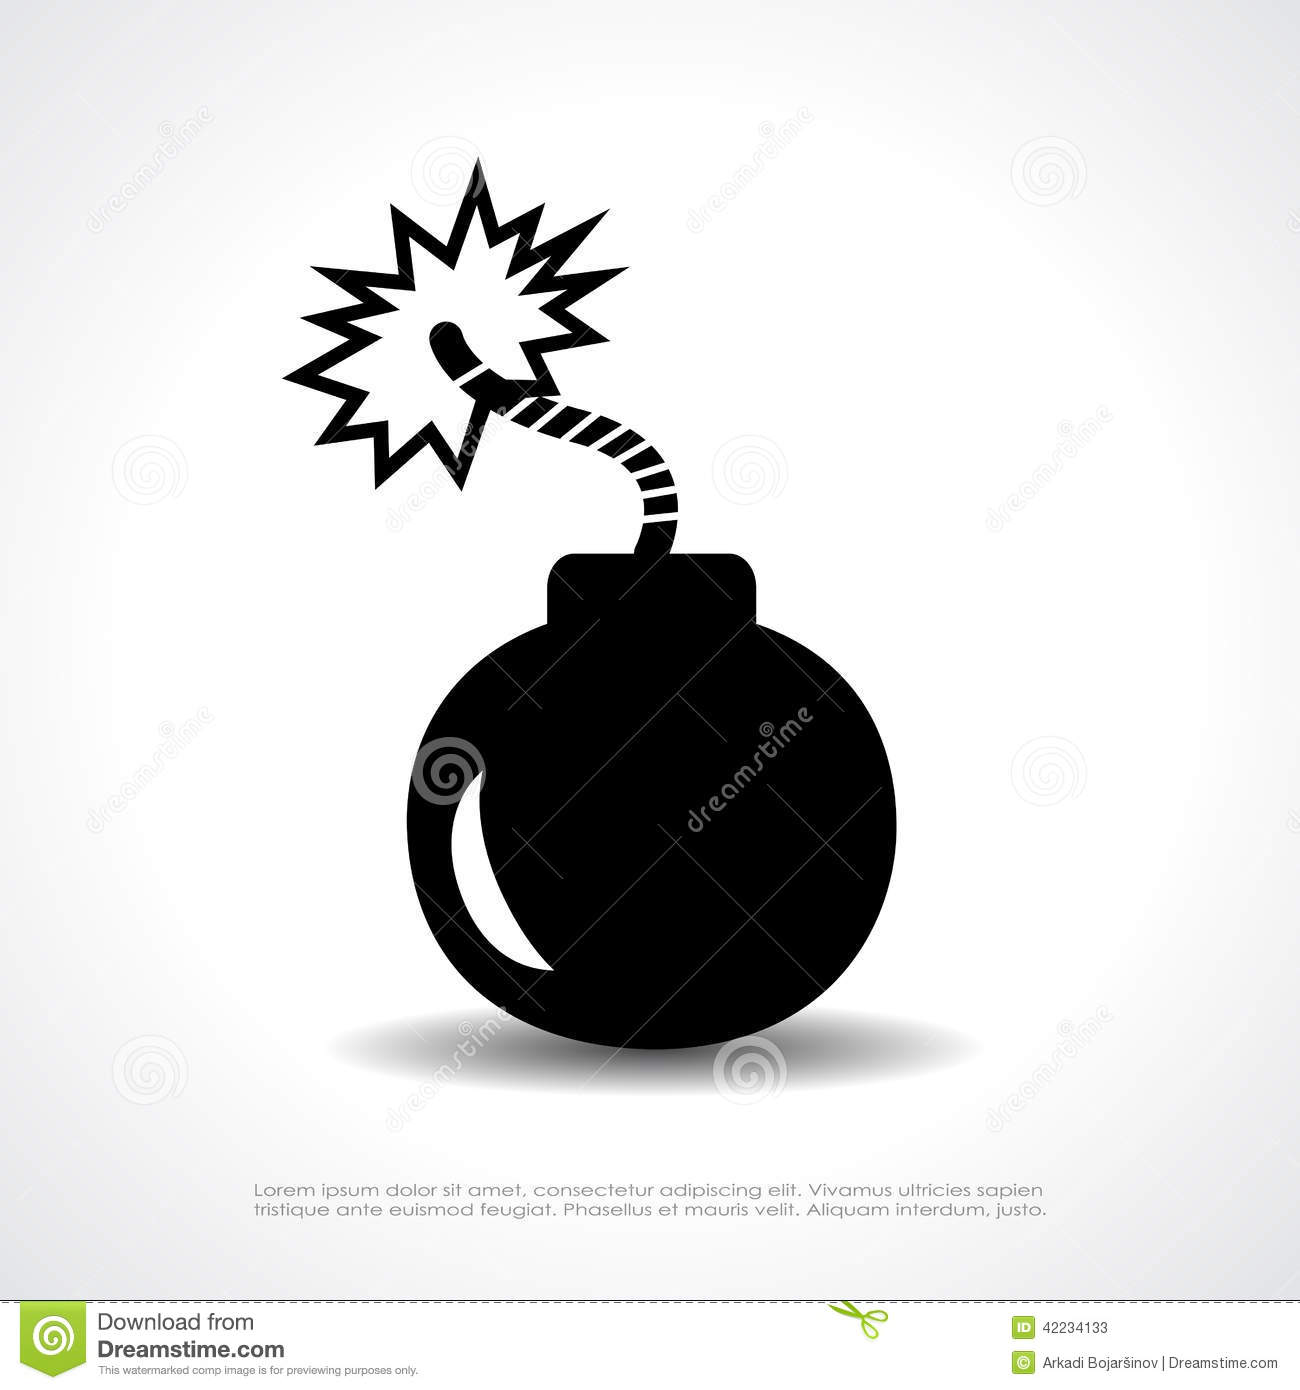 Bomb vector symbol stock vector. Image of danger ...